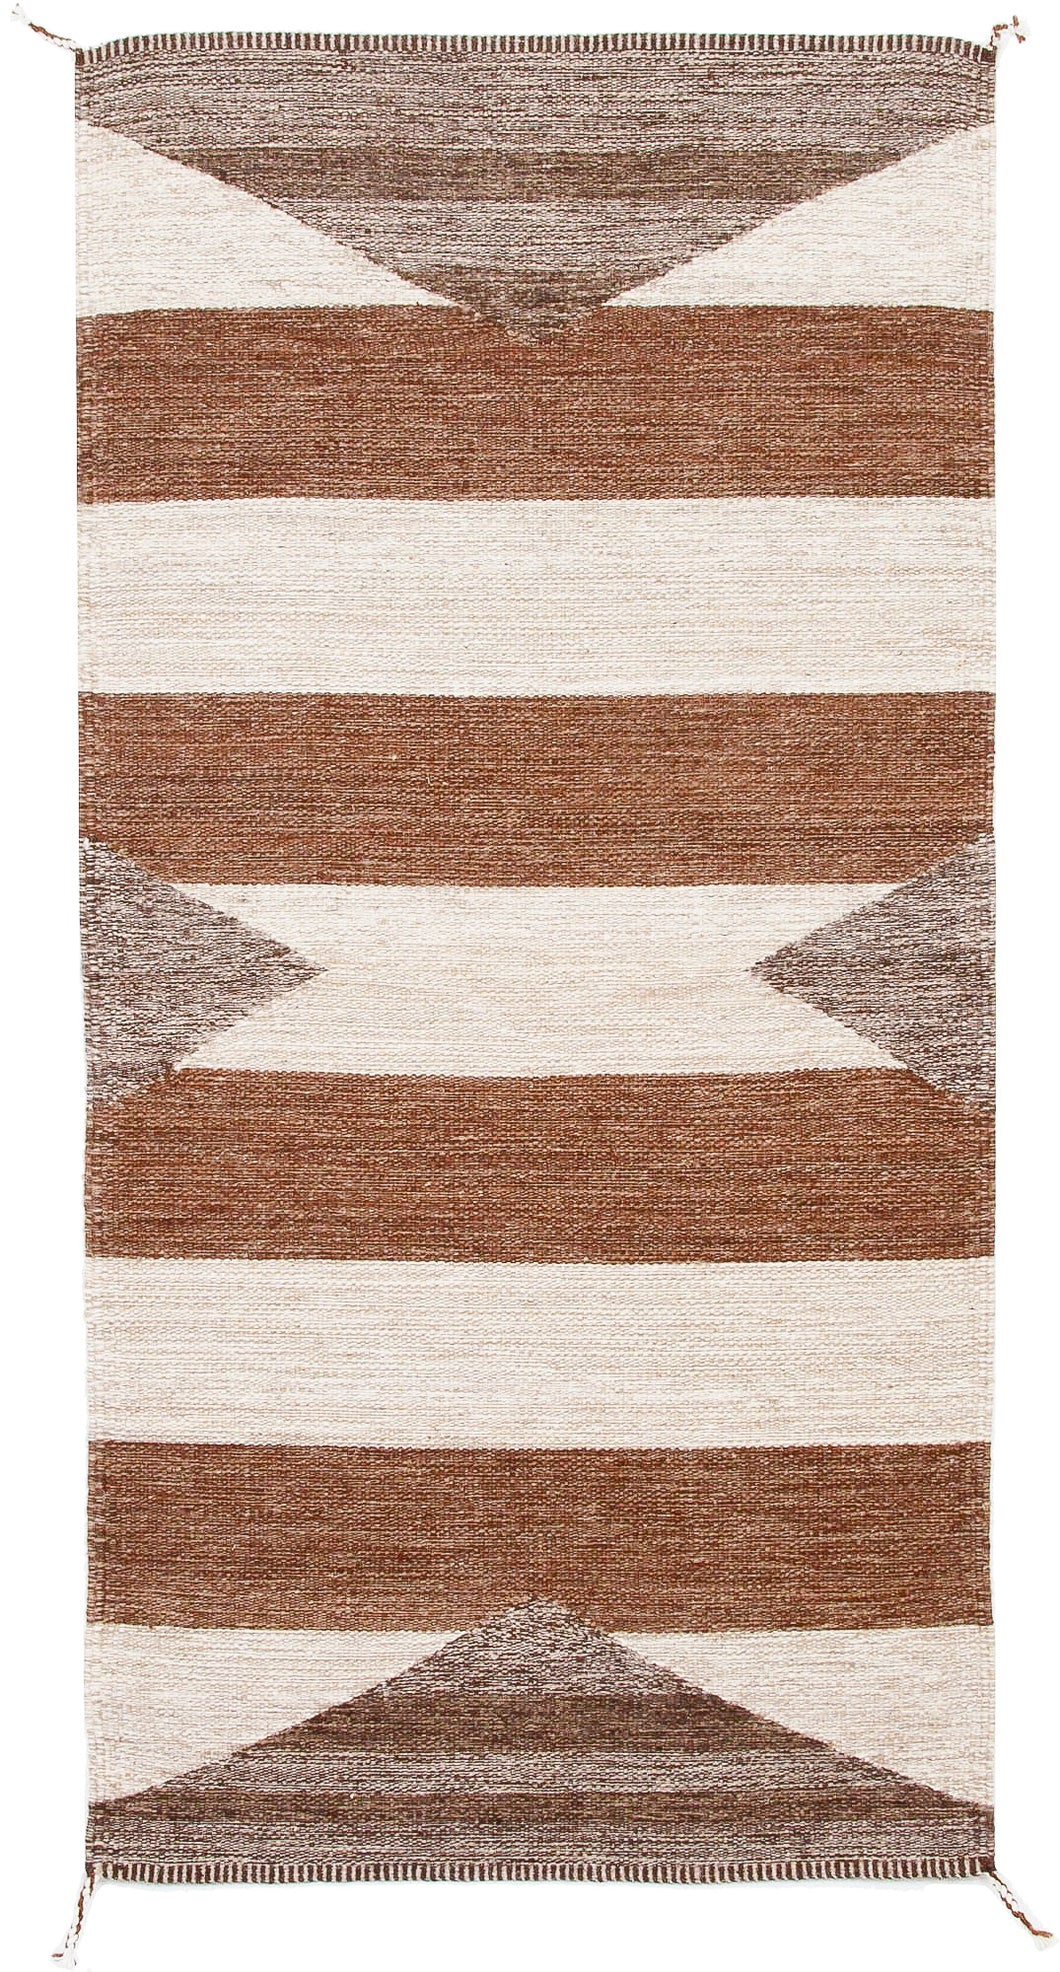 Handwoven Zapotec Indian Rug - Zanzibar Wool Oaxacan Textile